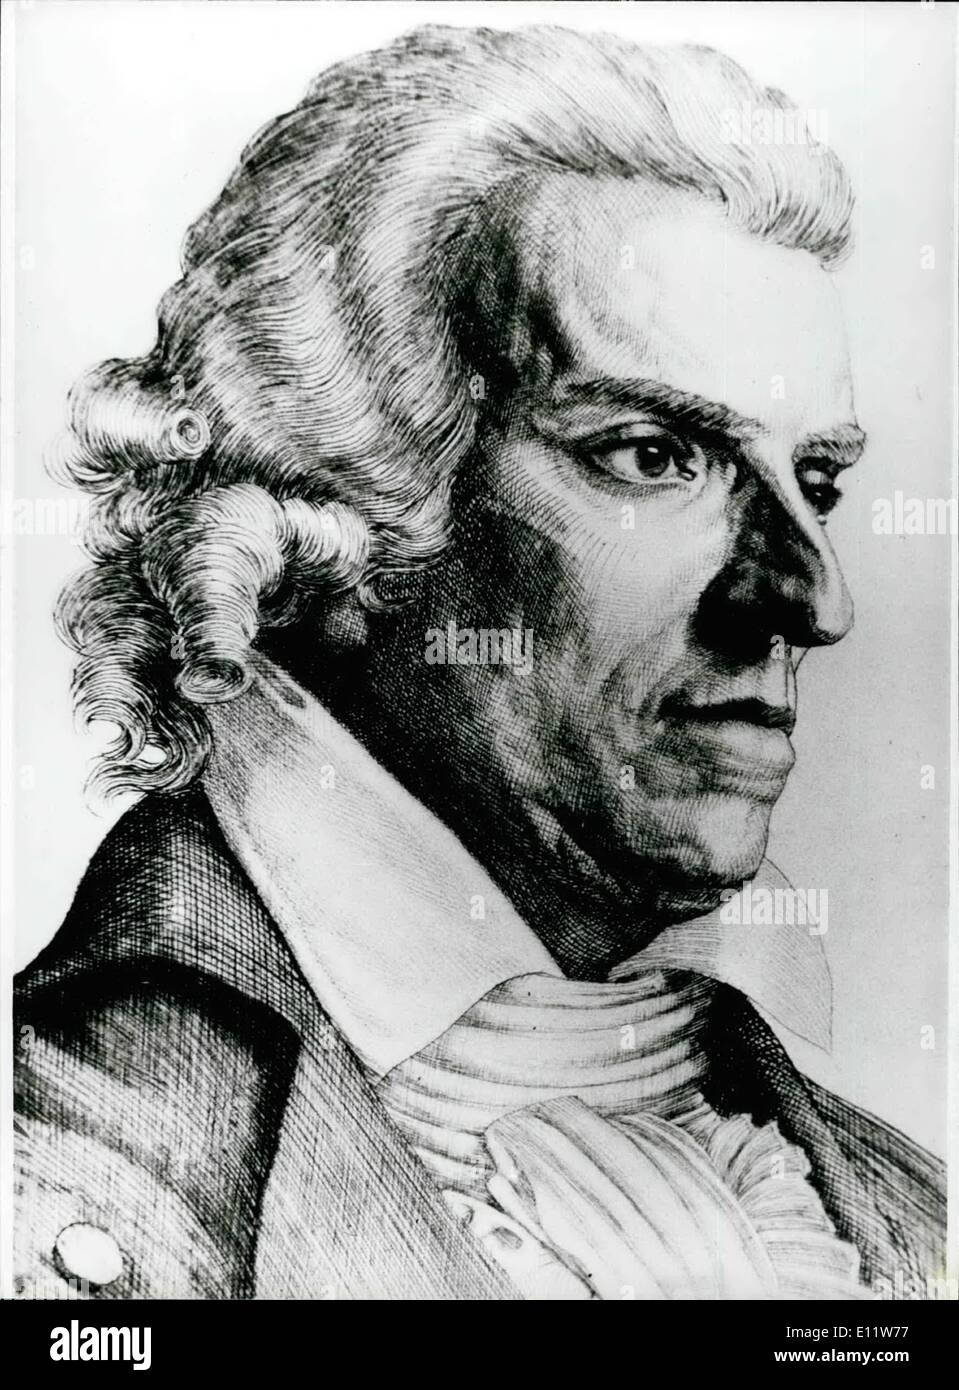 May 05, 1980 - 175th Day Of Death Of Friedrich Von Schiller: At May 9th, 1805 died in Weimar during working on his play ''Demetrius'', Friedrich von Schiller (Friedrich Von Schiller, our picture shows a contemporary engraving). He was burried in the night from 11th to 12th May 1805 on the cemetery of the Jakobschurch and from there transported to the sovereigns vault on May 16th. Schiller, born at November 10th 1759 in Marbach as son of an army-surgeon and a proprietors daughterstudied first law and later from 1775 physics - Stock Image